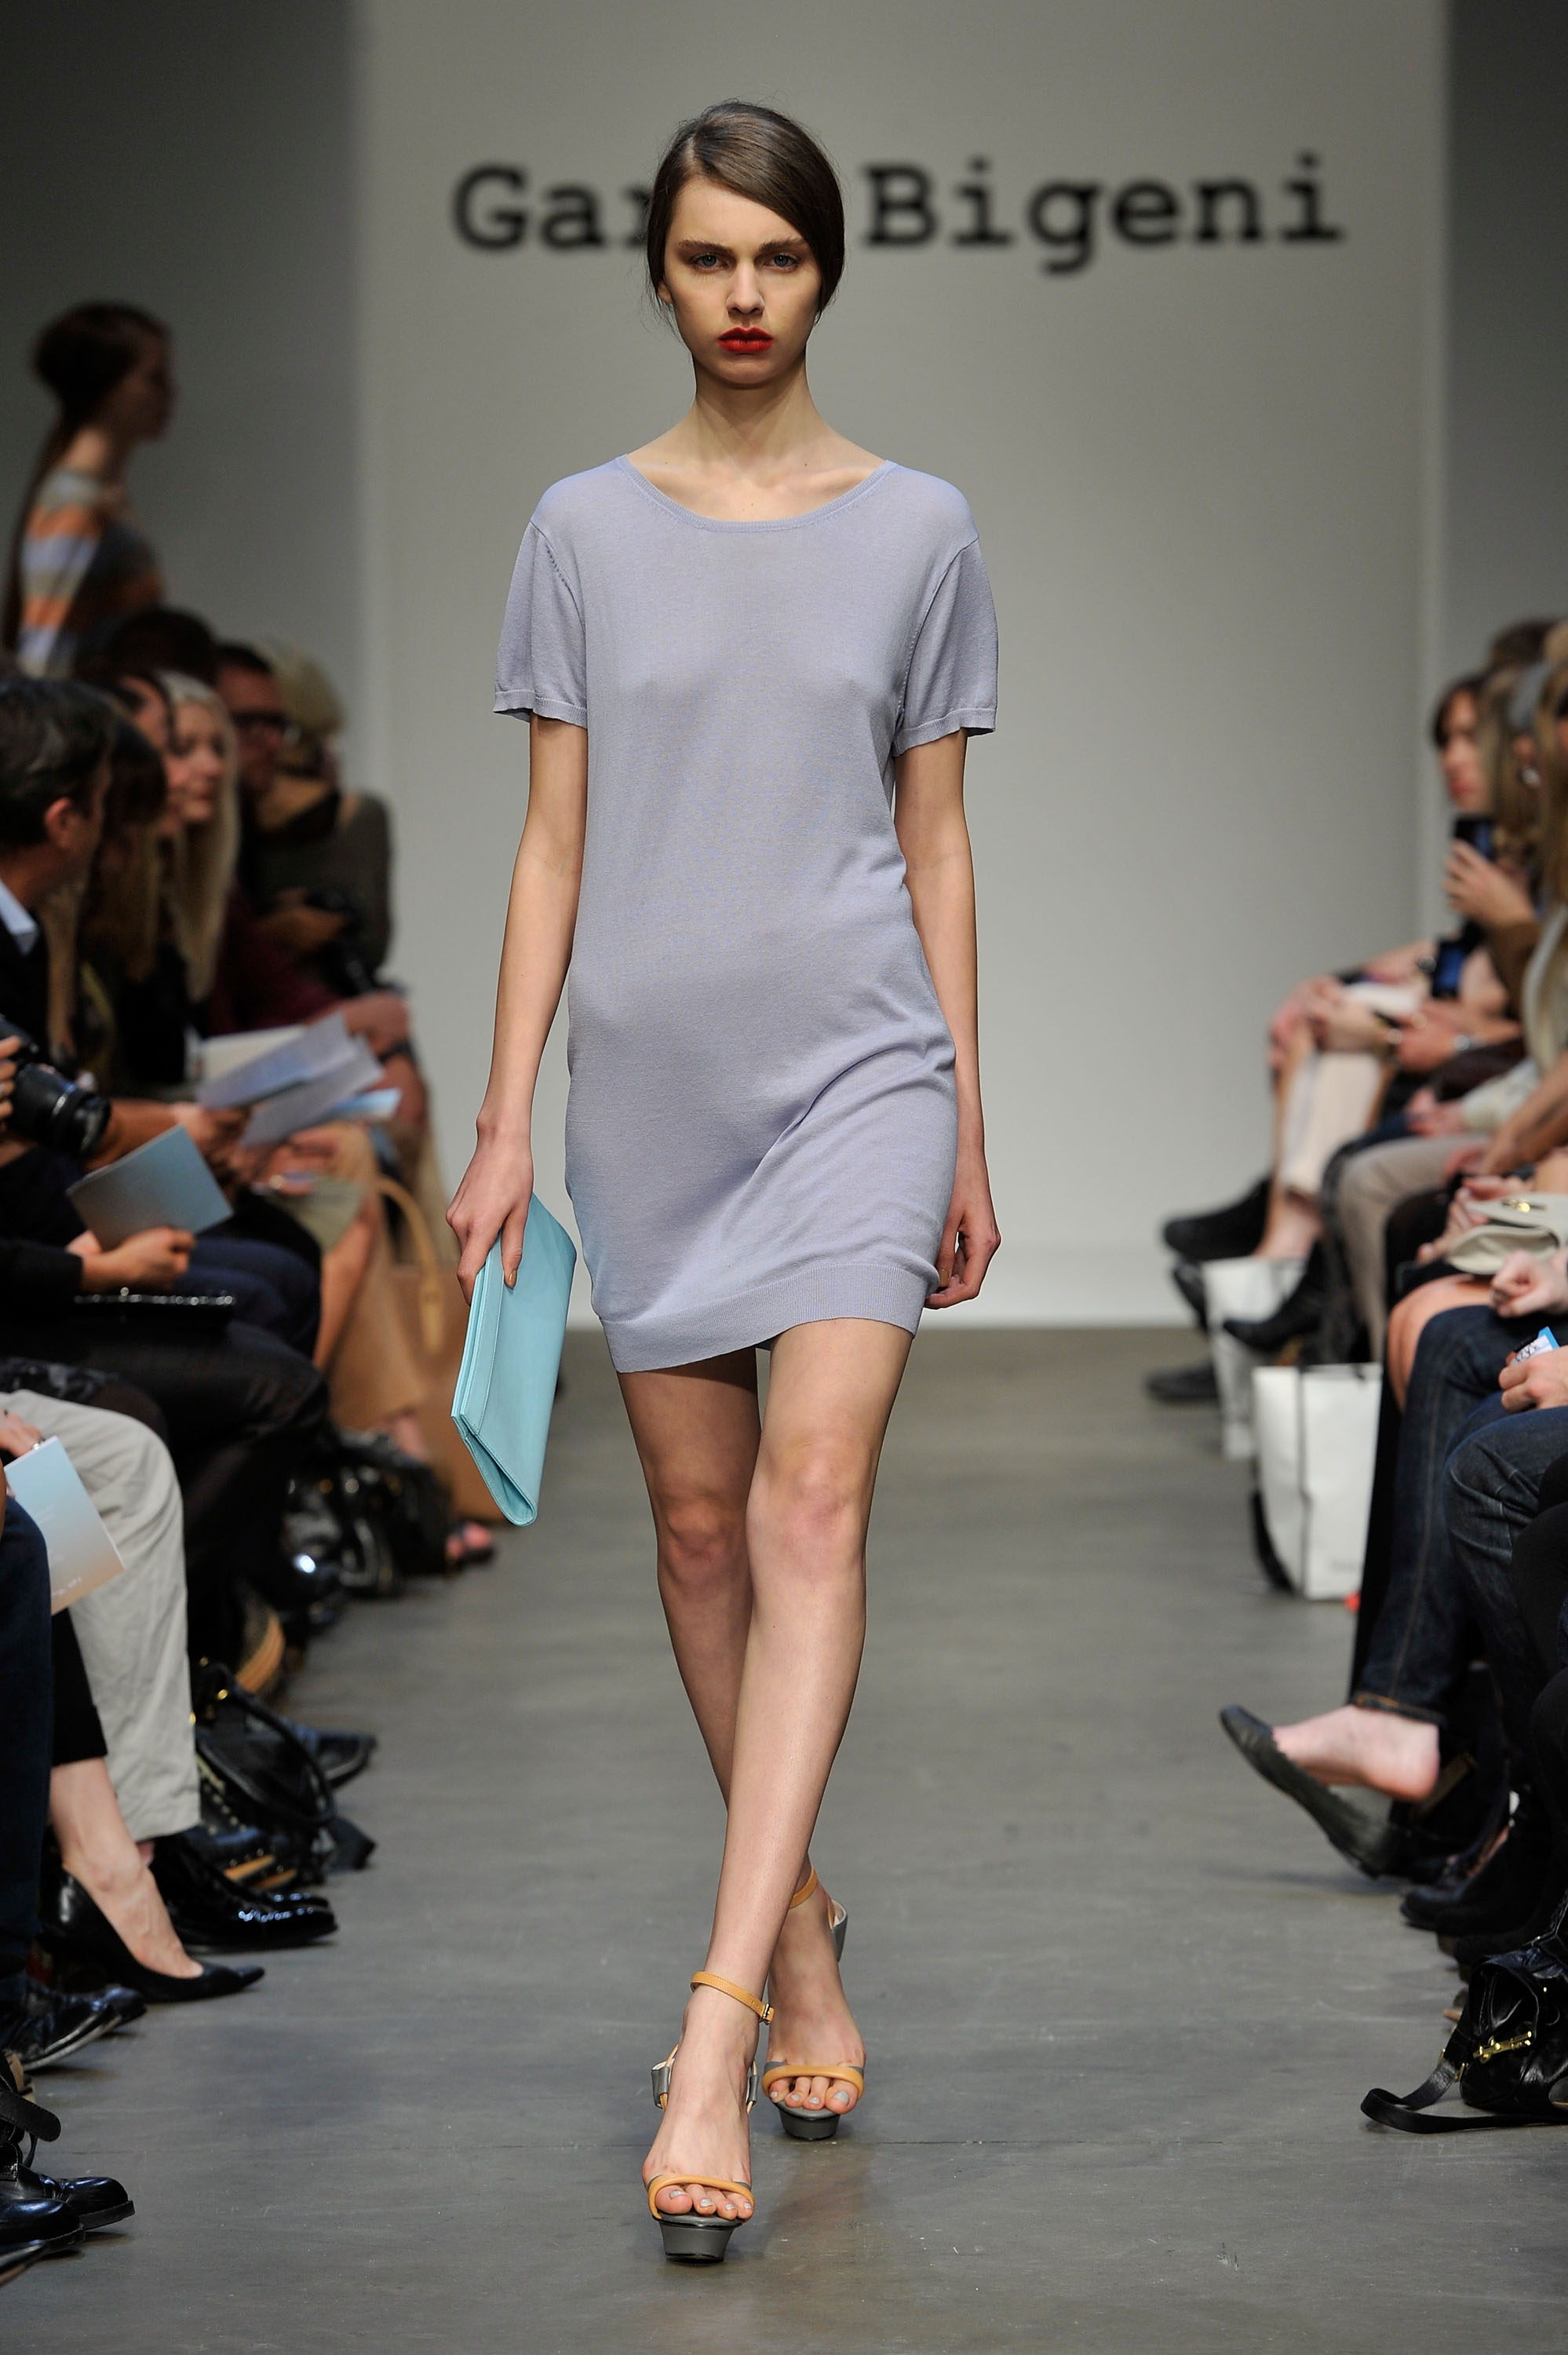 Runway Review And Pictures Of Gary Bigeni Spring Summer